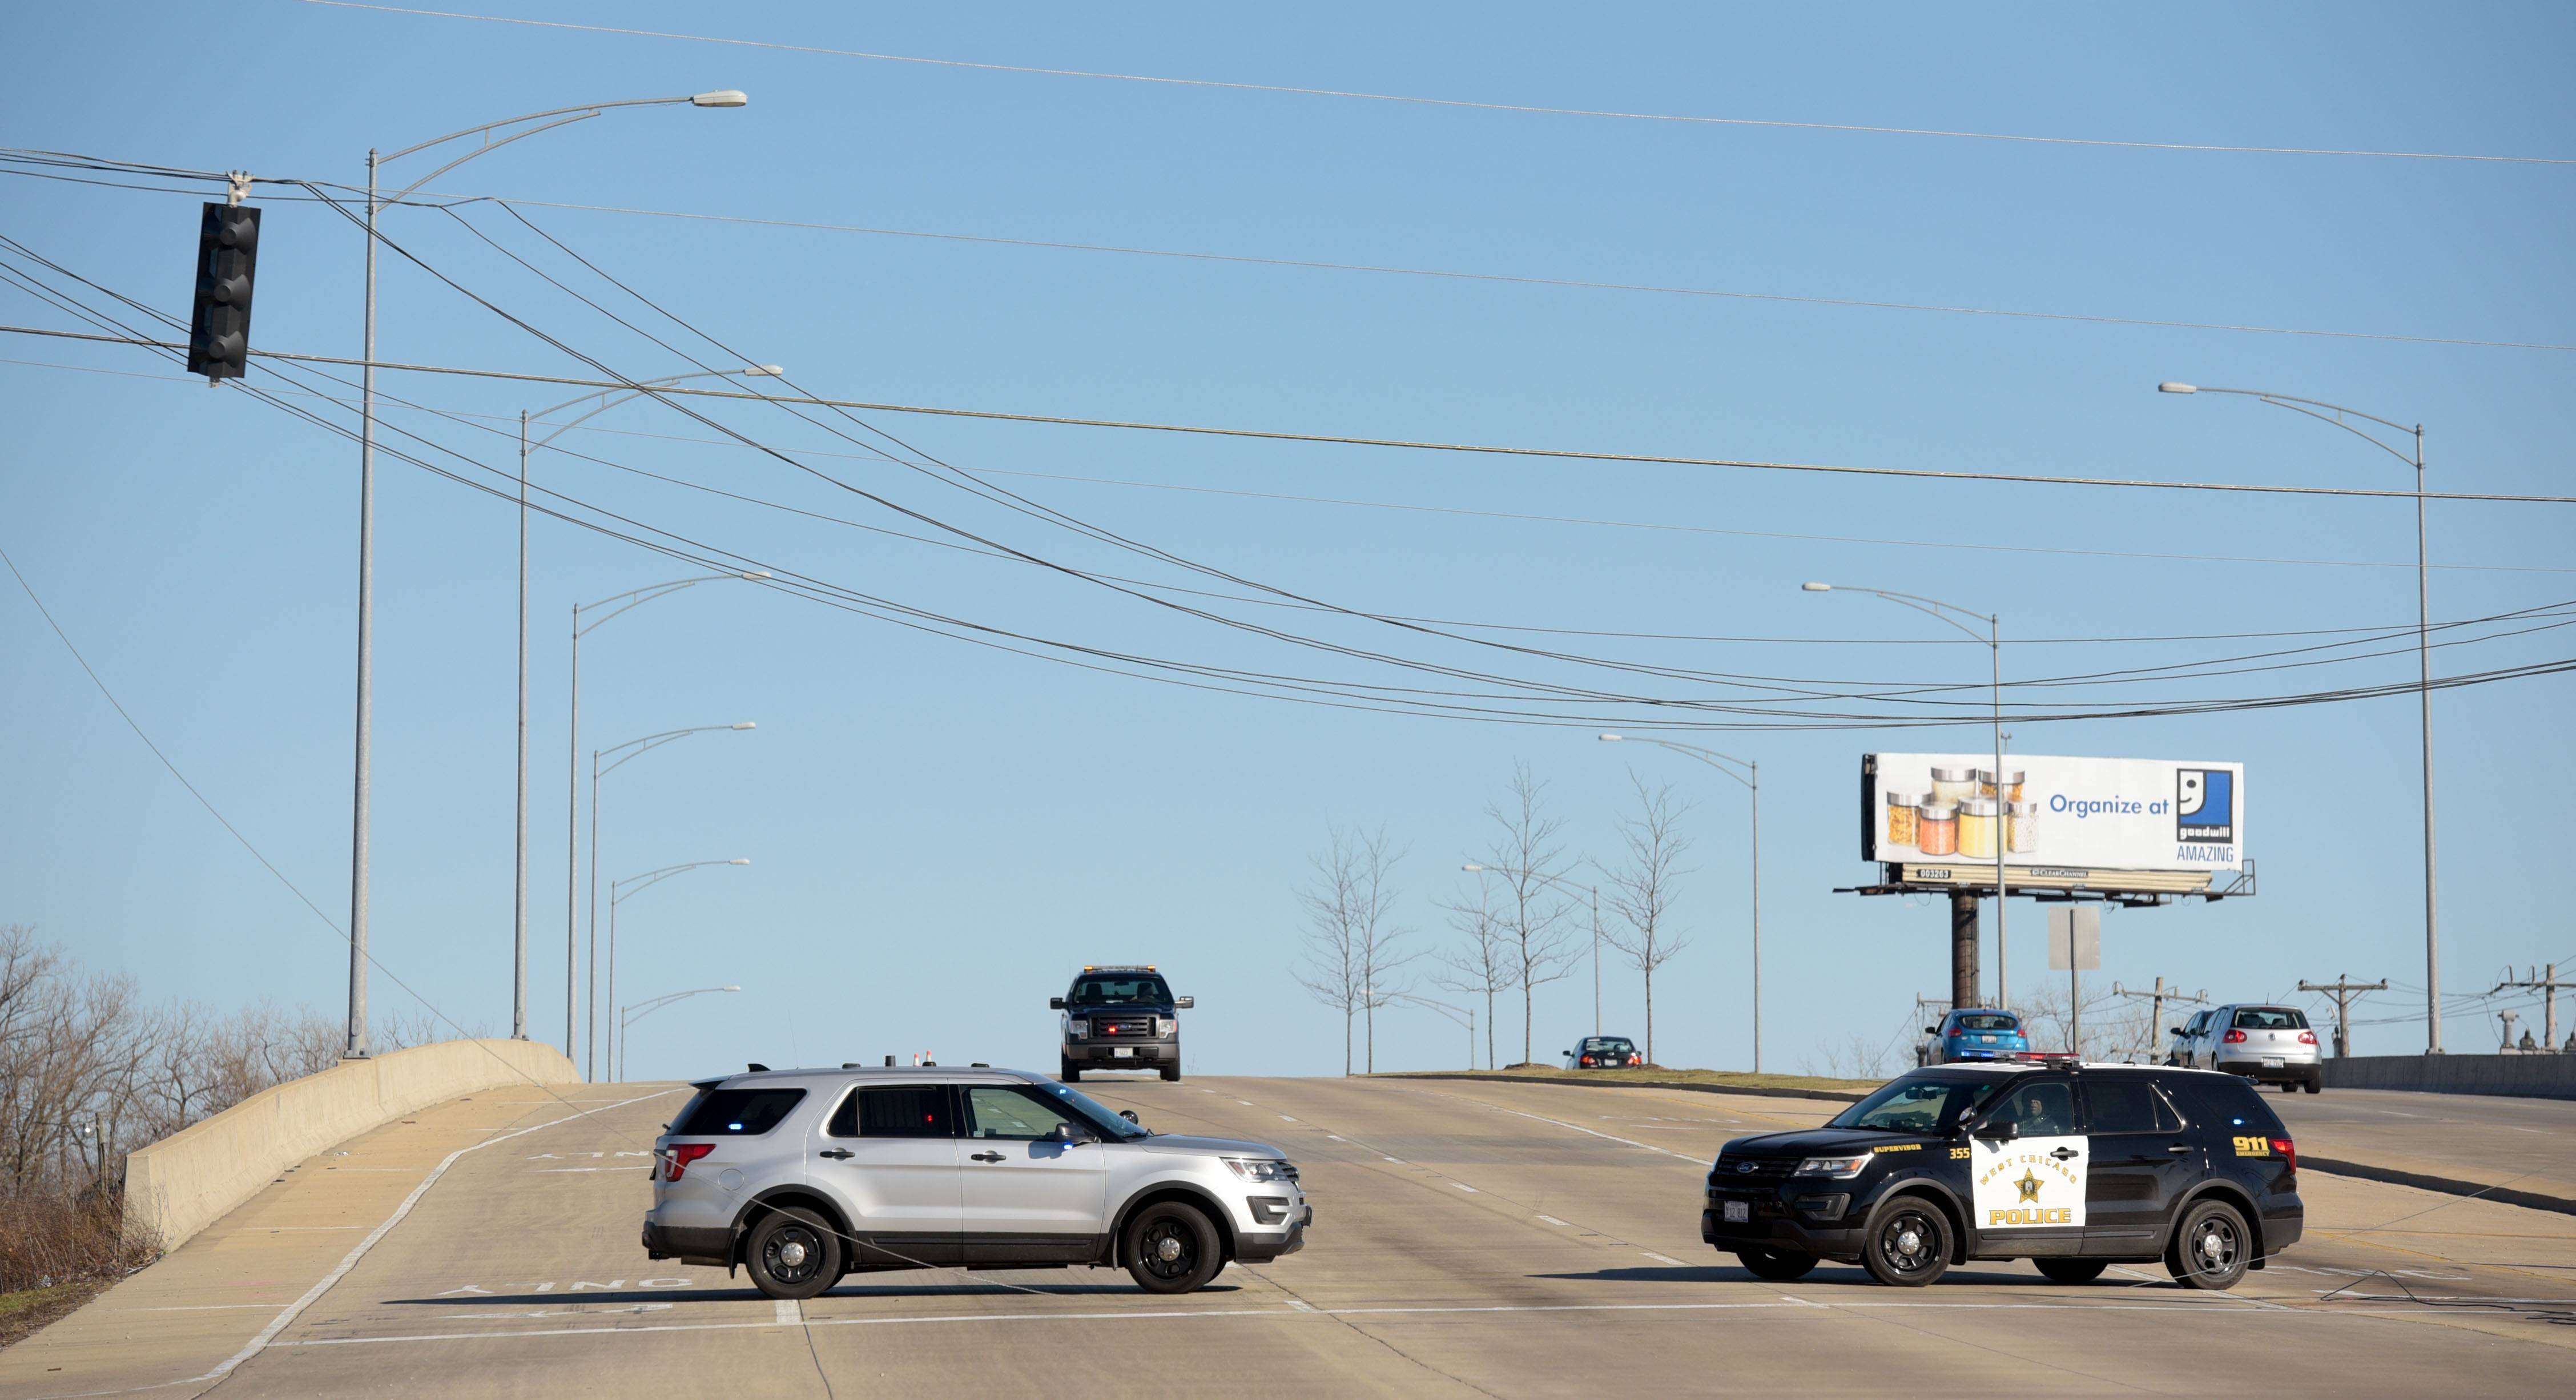 Westbound Route 64 in West Chicago was shut down between Route 59 and Powis Road Wednesday afternoon after high winds caused traffic light lines to come loose at Route 64 and Powis. Westbound traffic had to divert north or south on Route 59 to get around the closure.